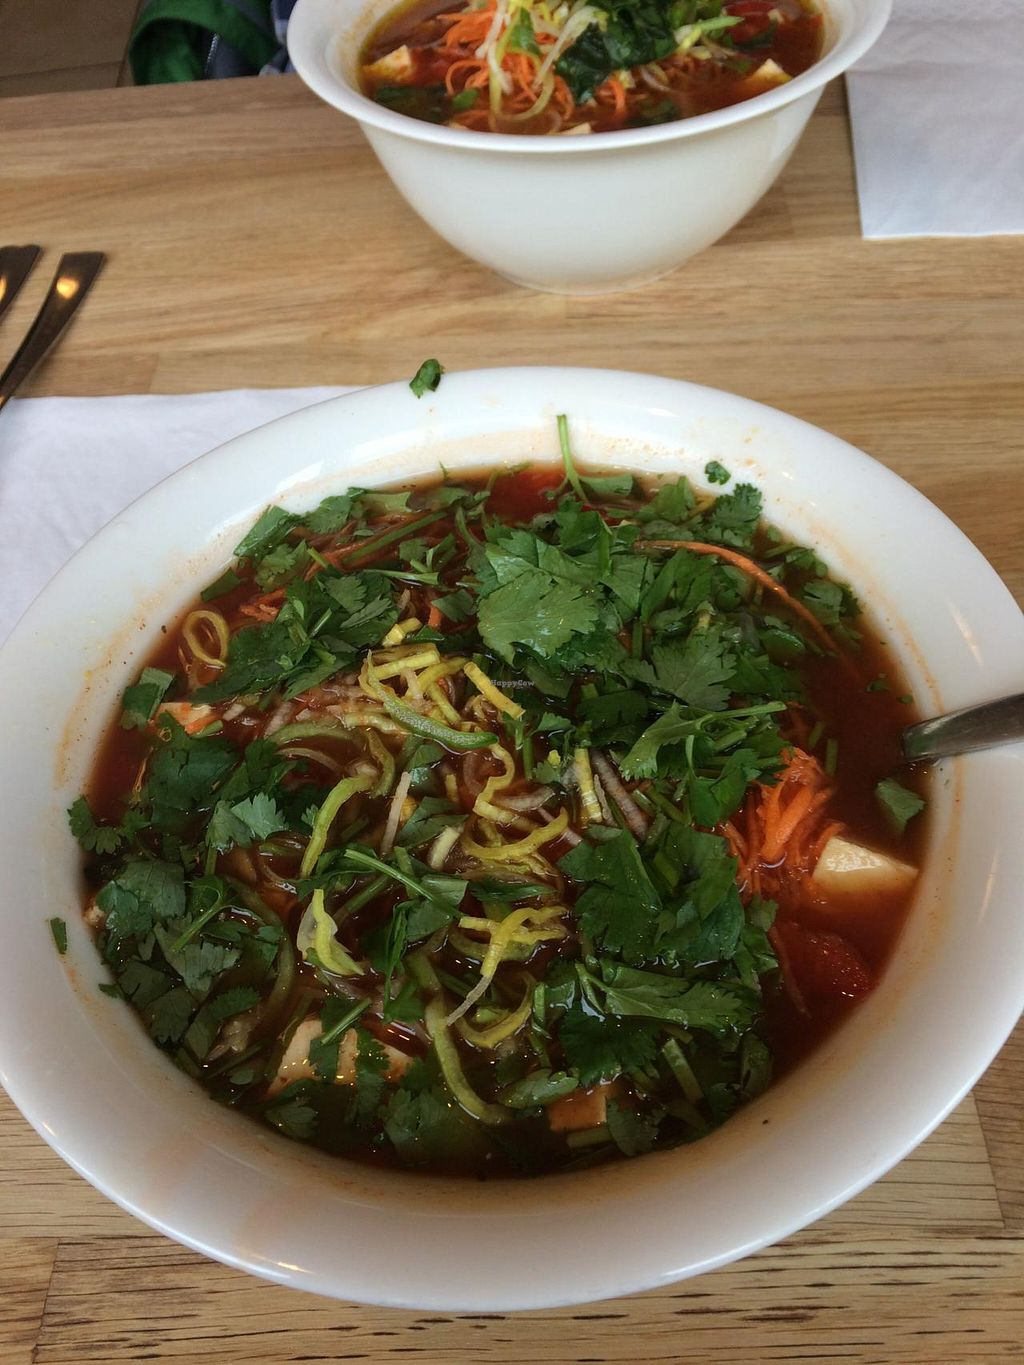 """Photo of Nudluskalin  by <a href=""""/members/profile/pdxjayhawk"""">pdxjayhawk</a> <br/>Delicious vegan noodles <br/> April 6, 2015  - <a href='/contact/abuse/image/22006/98113'>Report</a>"""